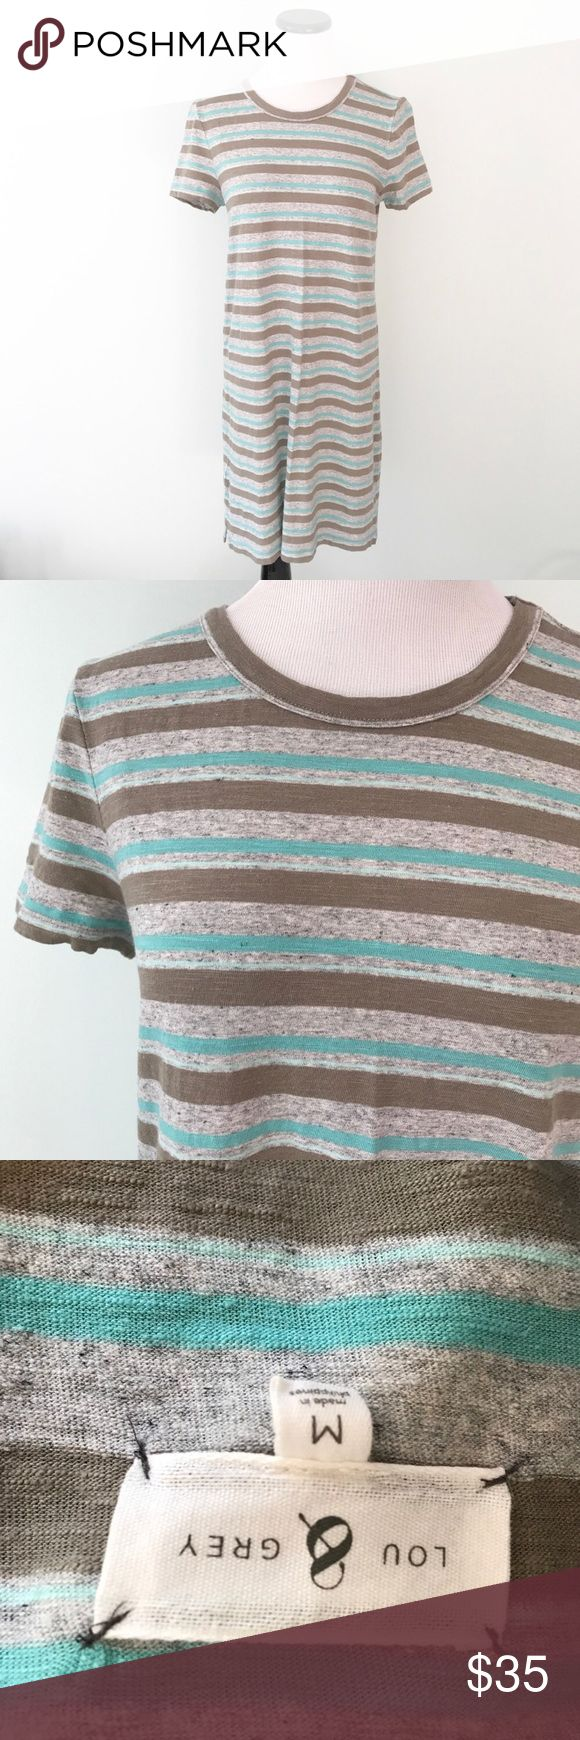 """LOU & GREY Striped T-Shirt Dress green gray linen Worn once and in excellent condition. Comfy T-shirt dress in Linen, cotton and spandex. Short sleeves. Chest 18"""". Length 35.5"""". Lou & Grey Dresses"""